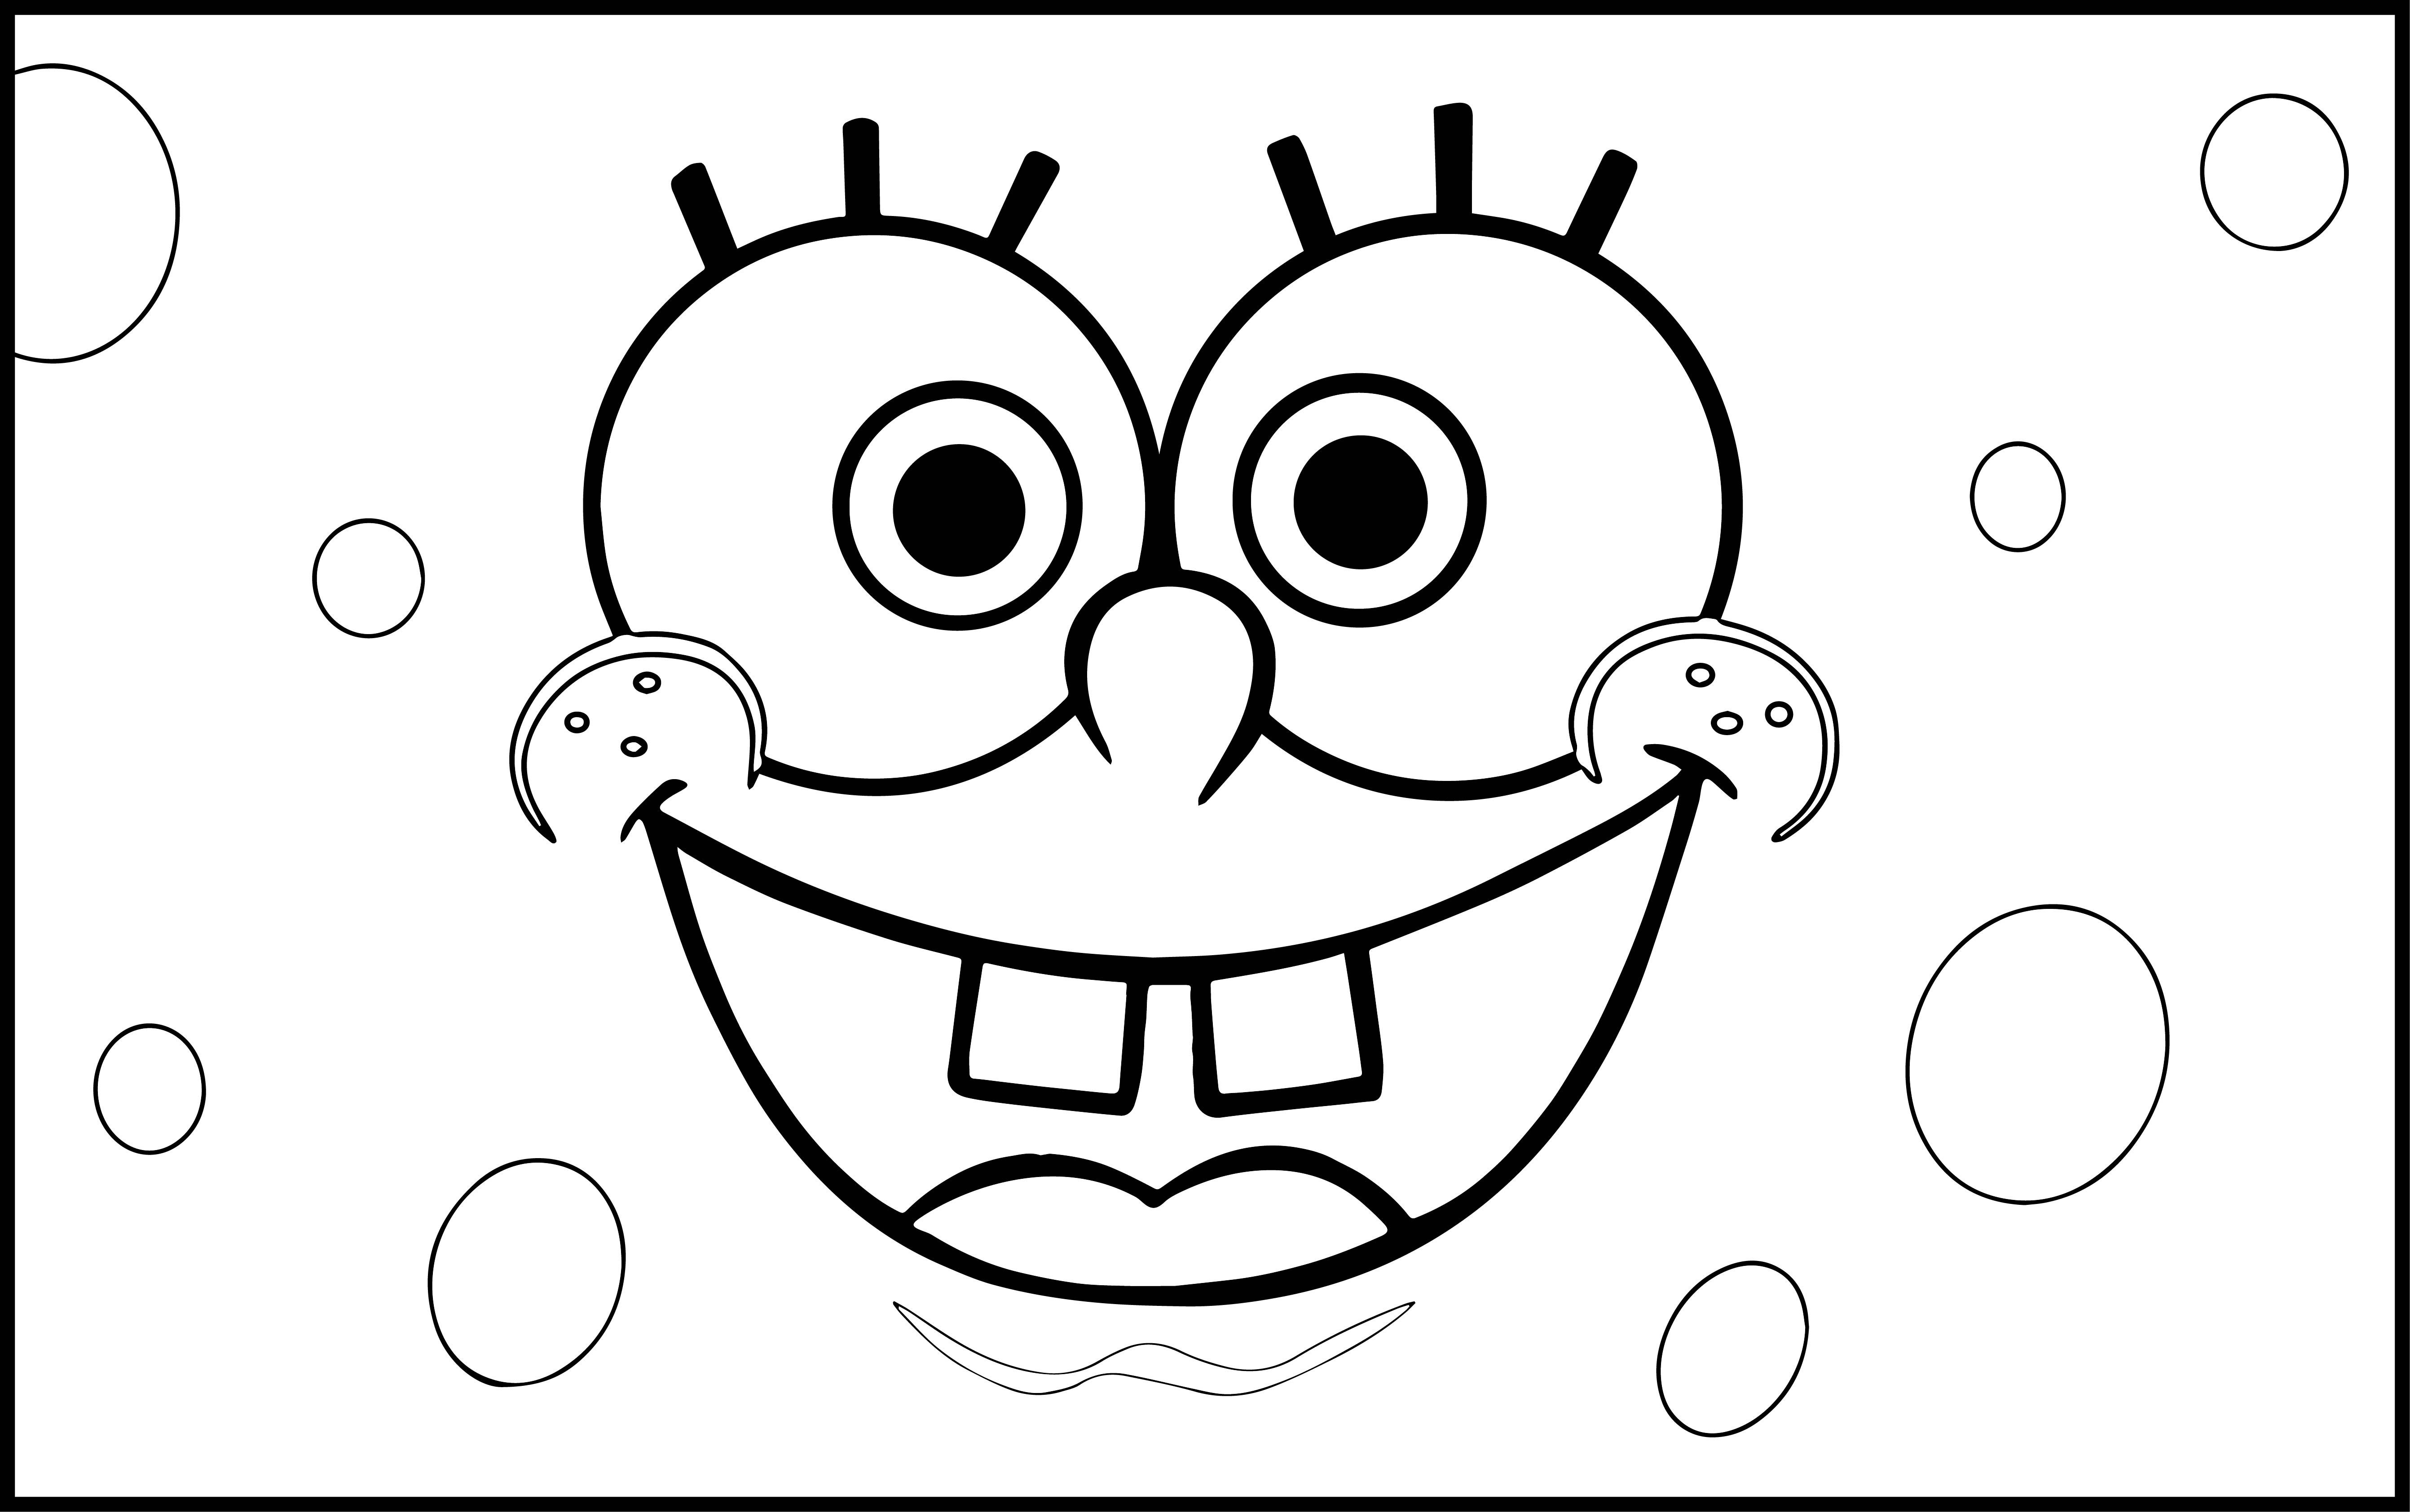 spongebob birthday coloring pages - photo#27